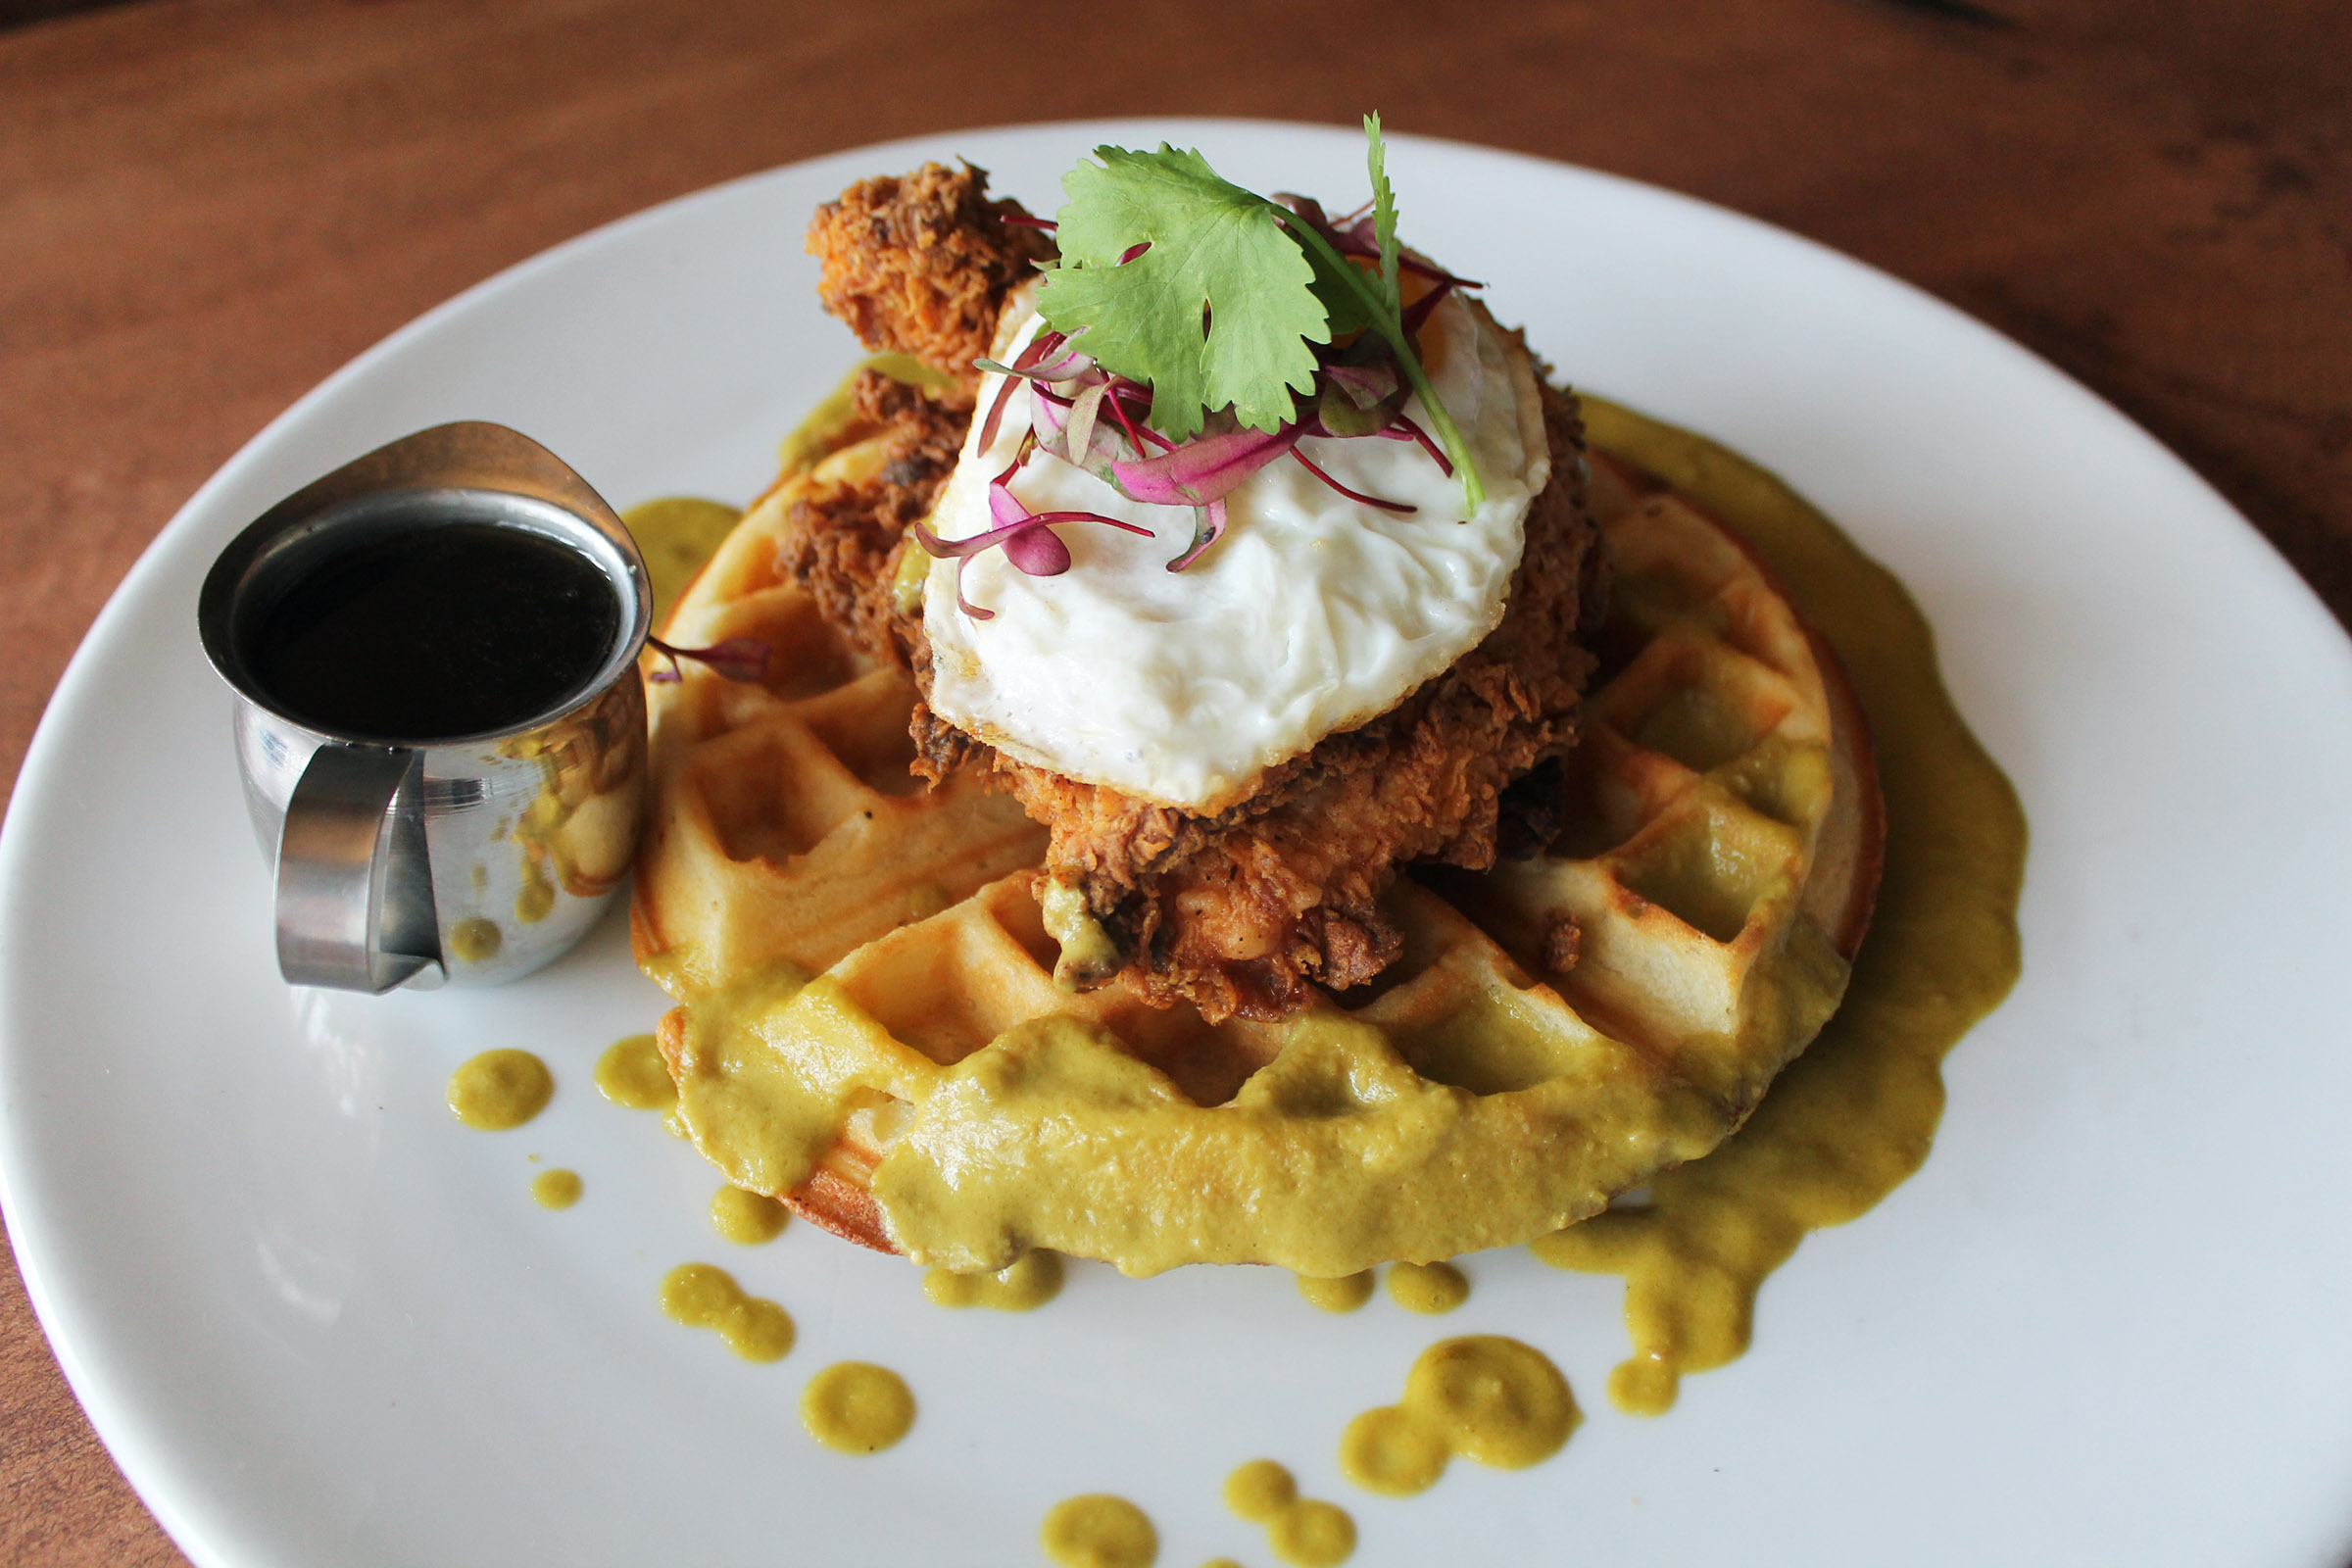 Chicken and Waffles: Fried Chicken Breast, Belgian Waffle, Fried Egg, Poblano Sauce, Maple Syrup